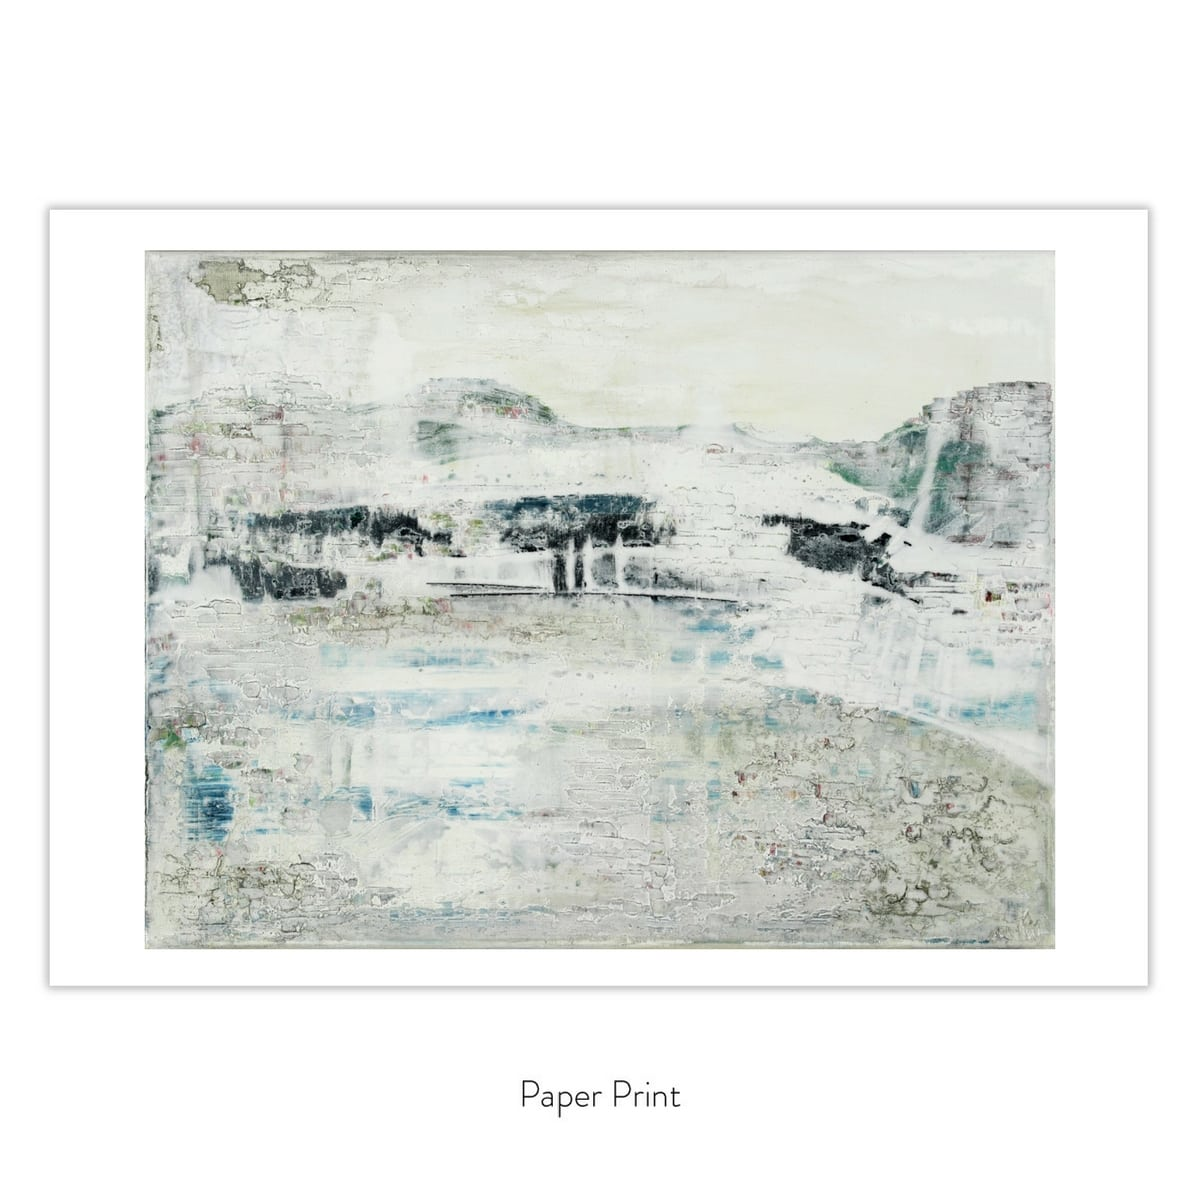 A Moment Of Peace in paper print format